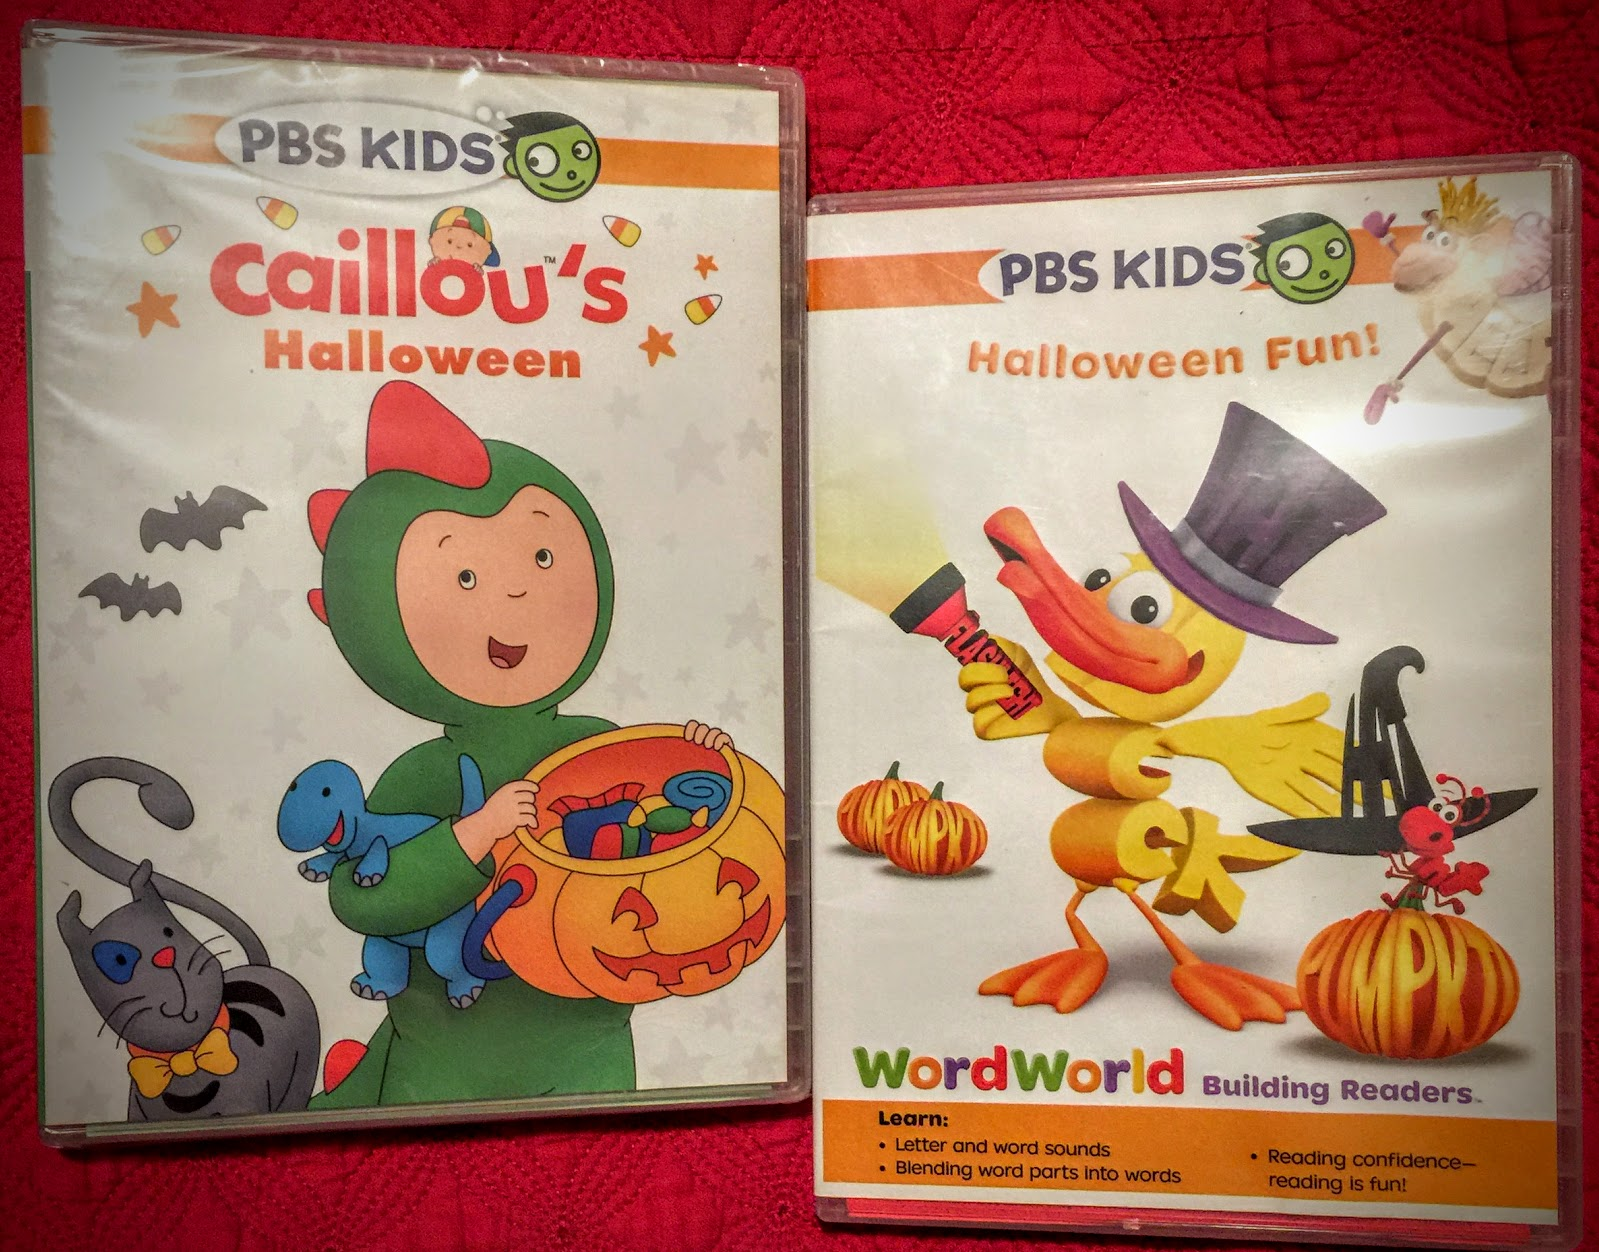 wordworld kooky spooky halloween dvd oldiescom